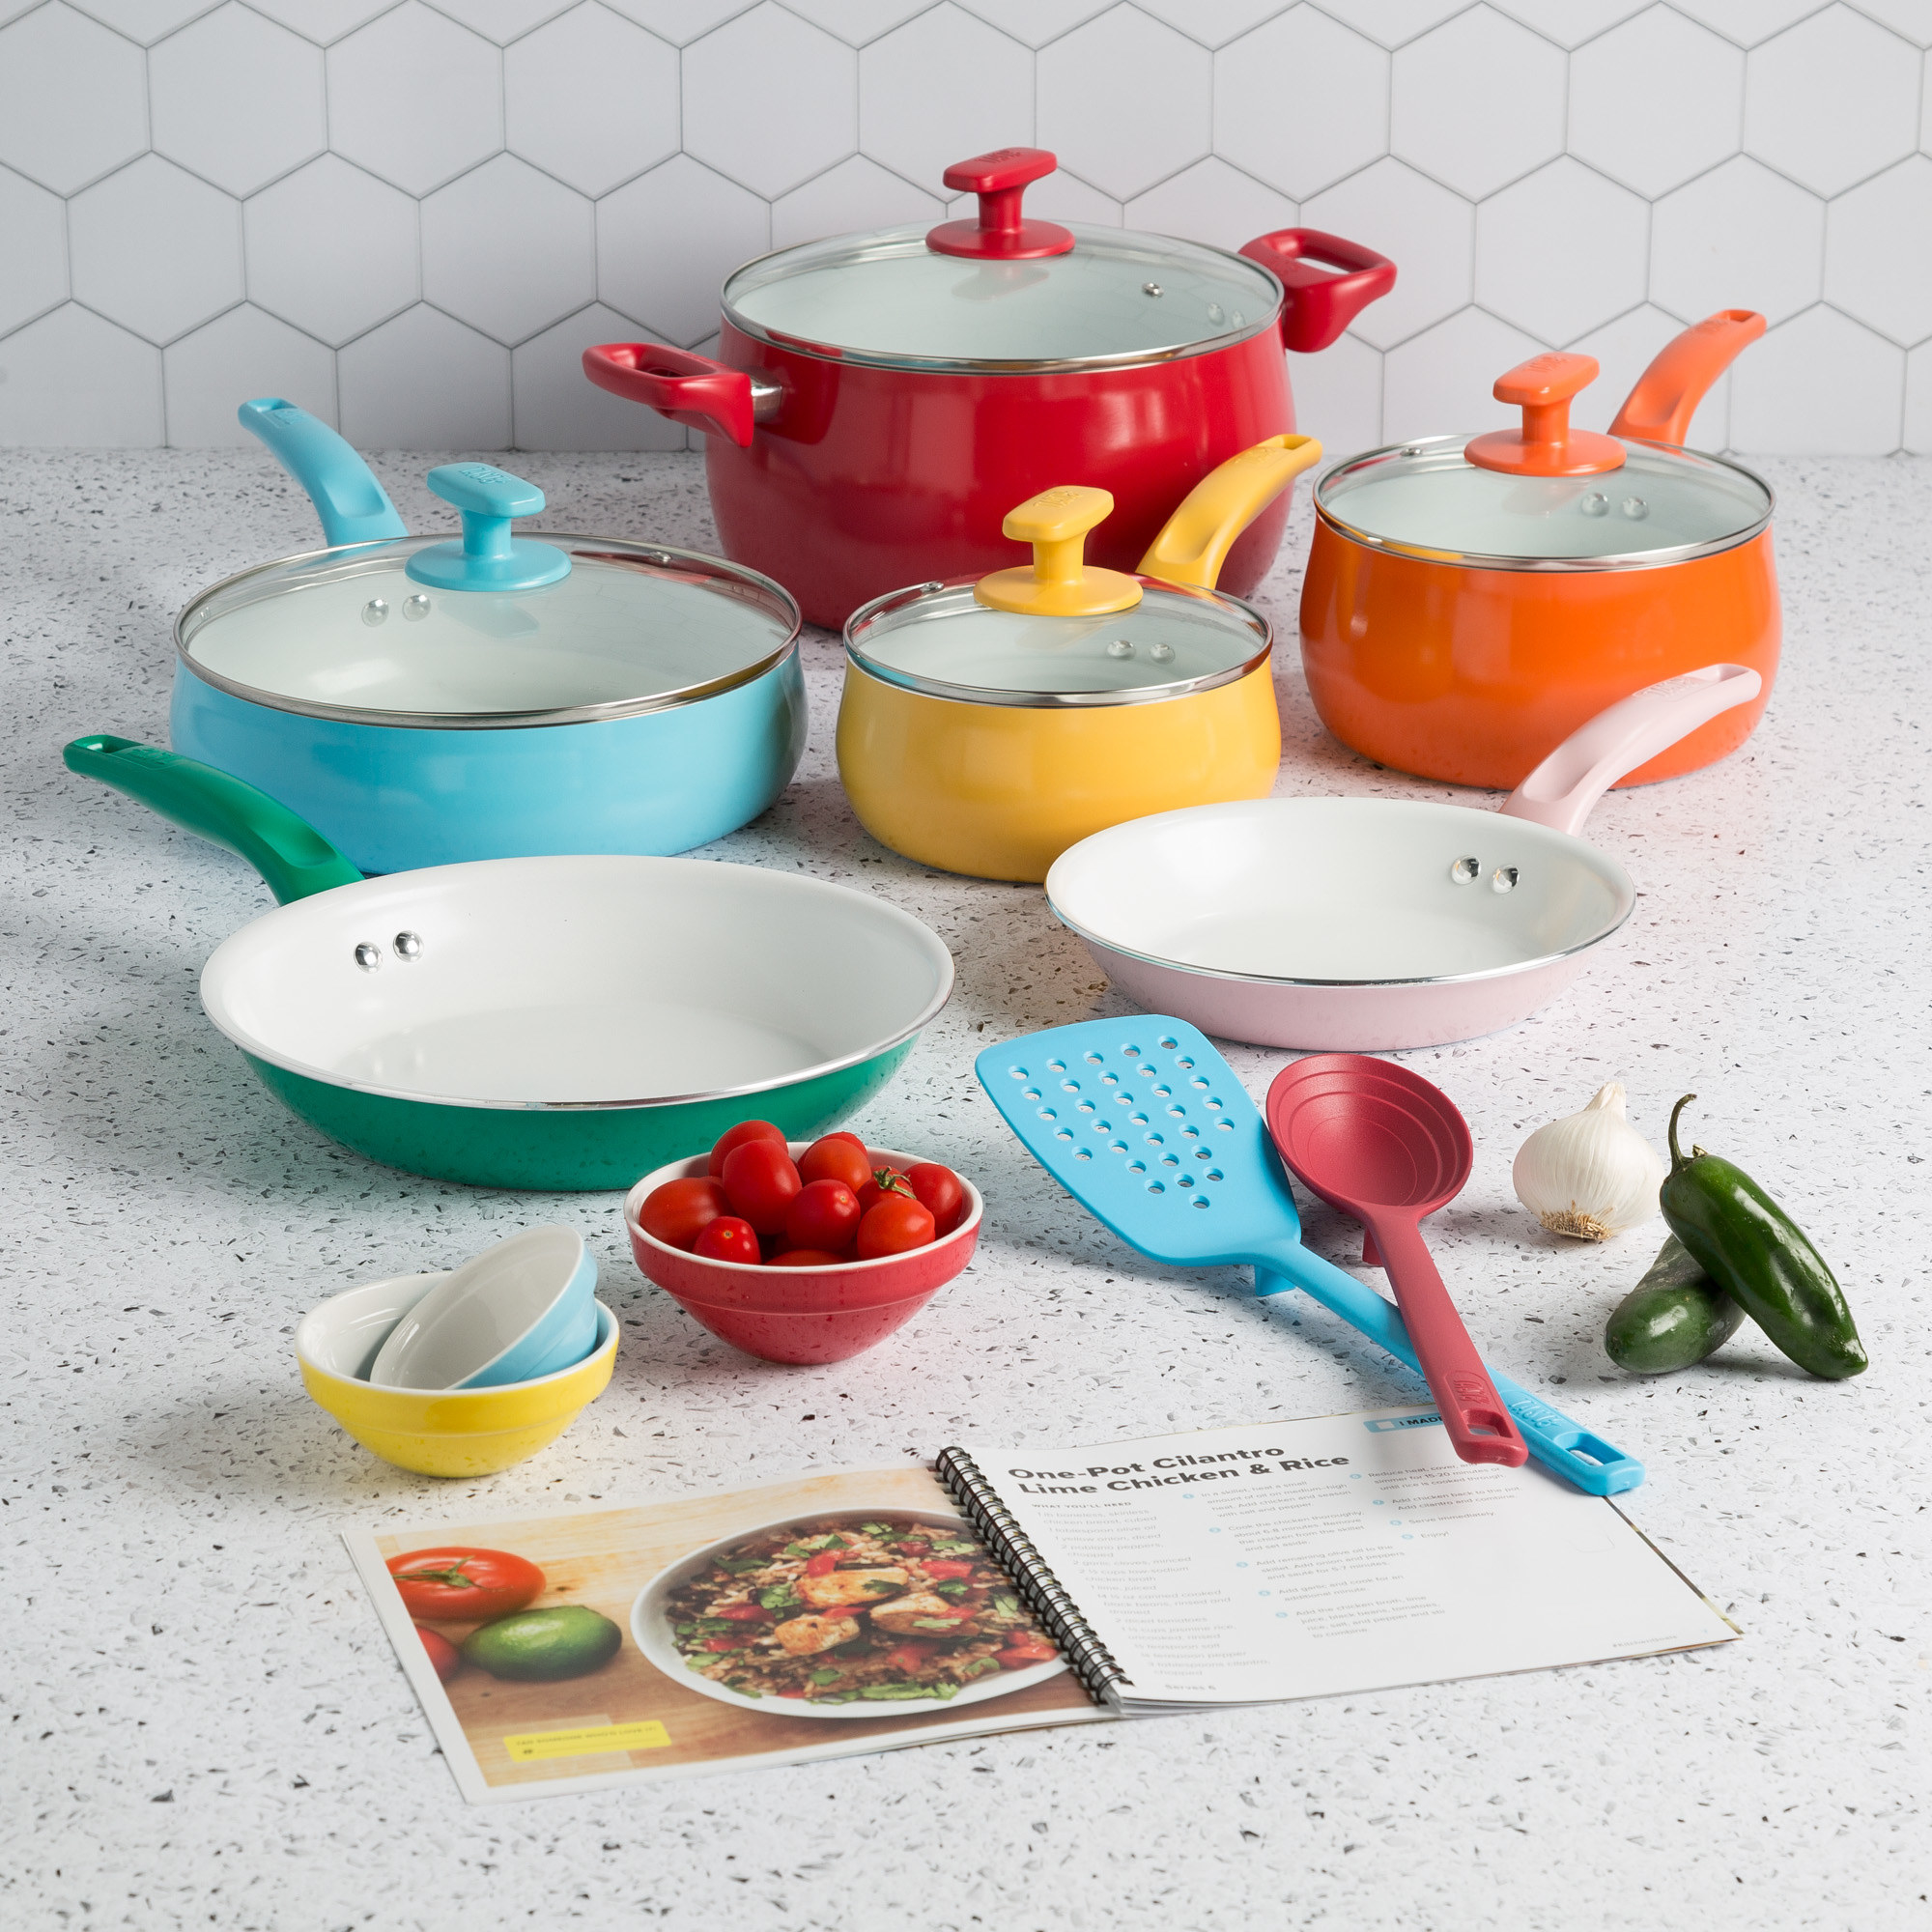 The cookware set